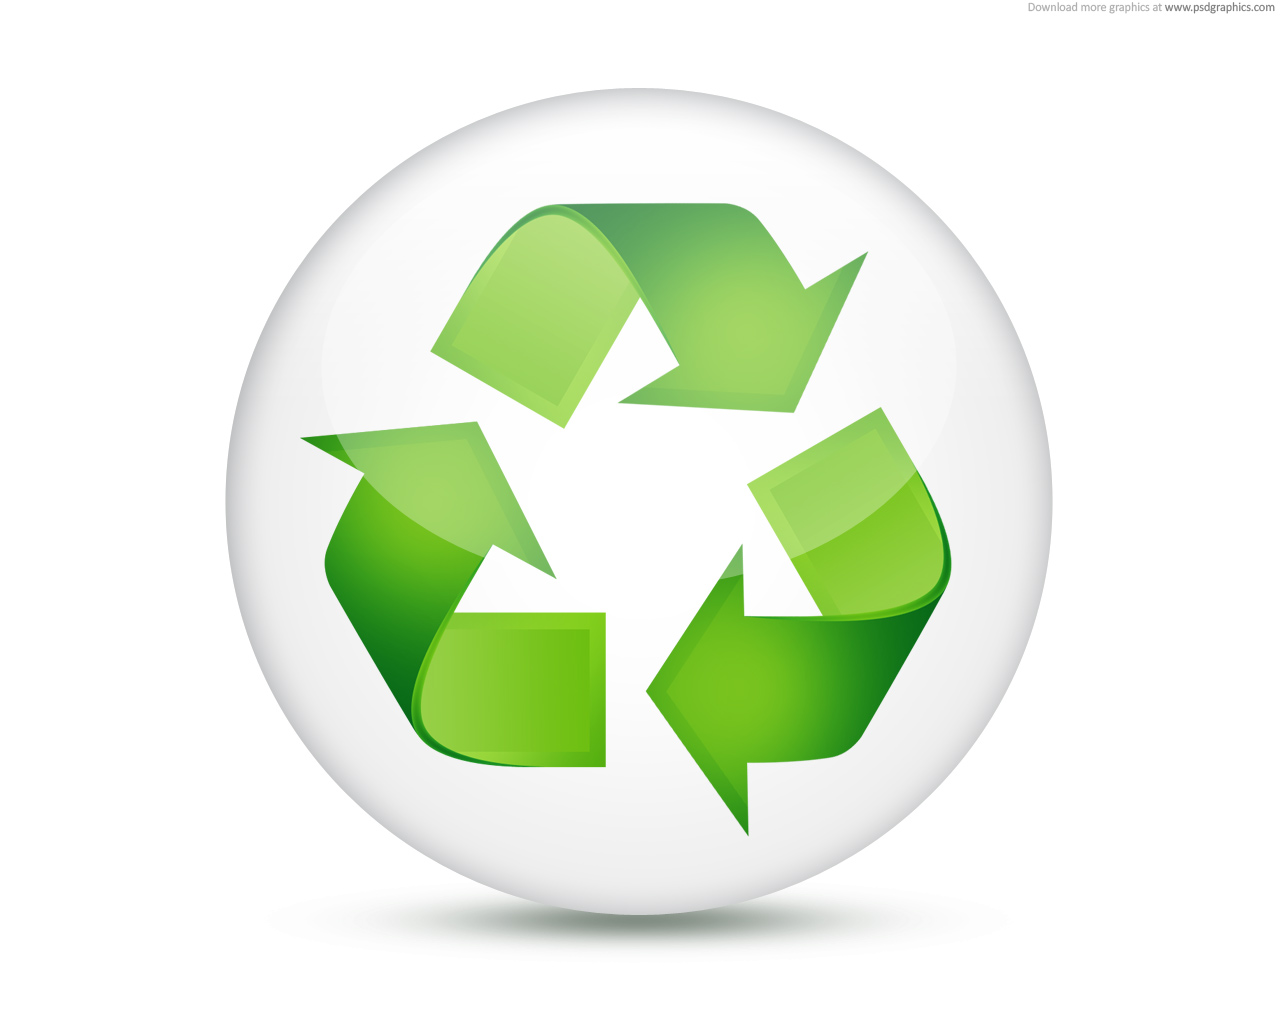 green-recycling-button.jpg